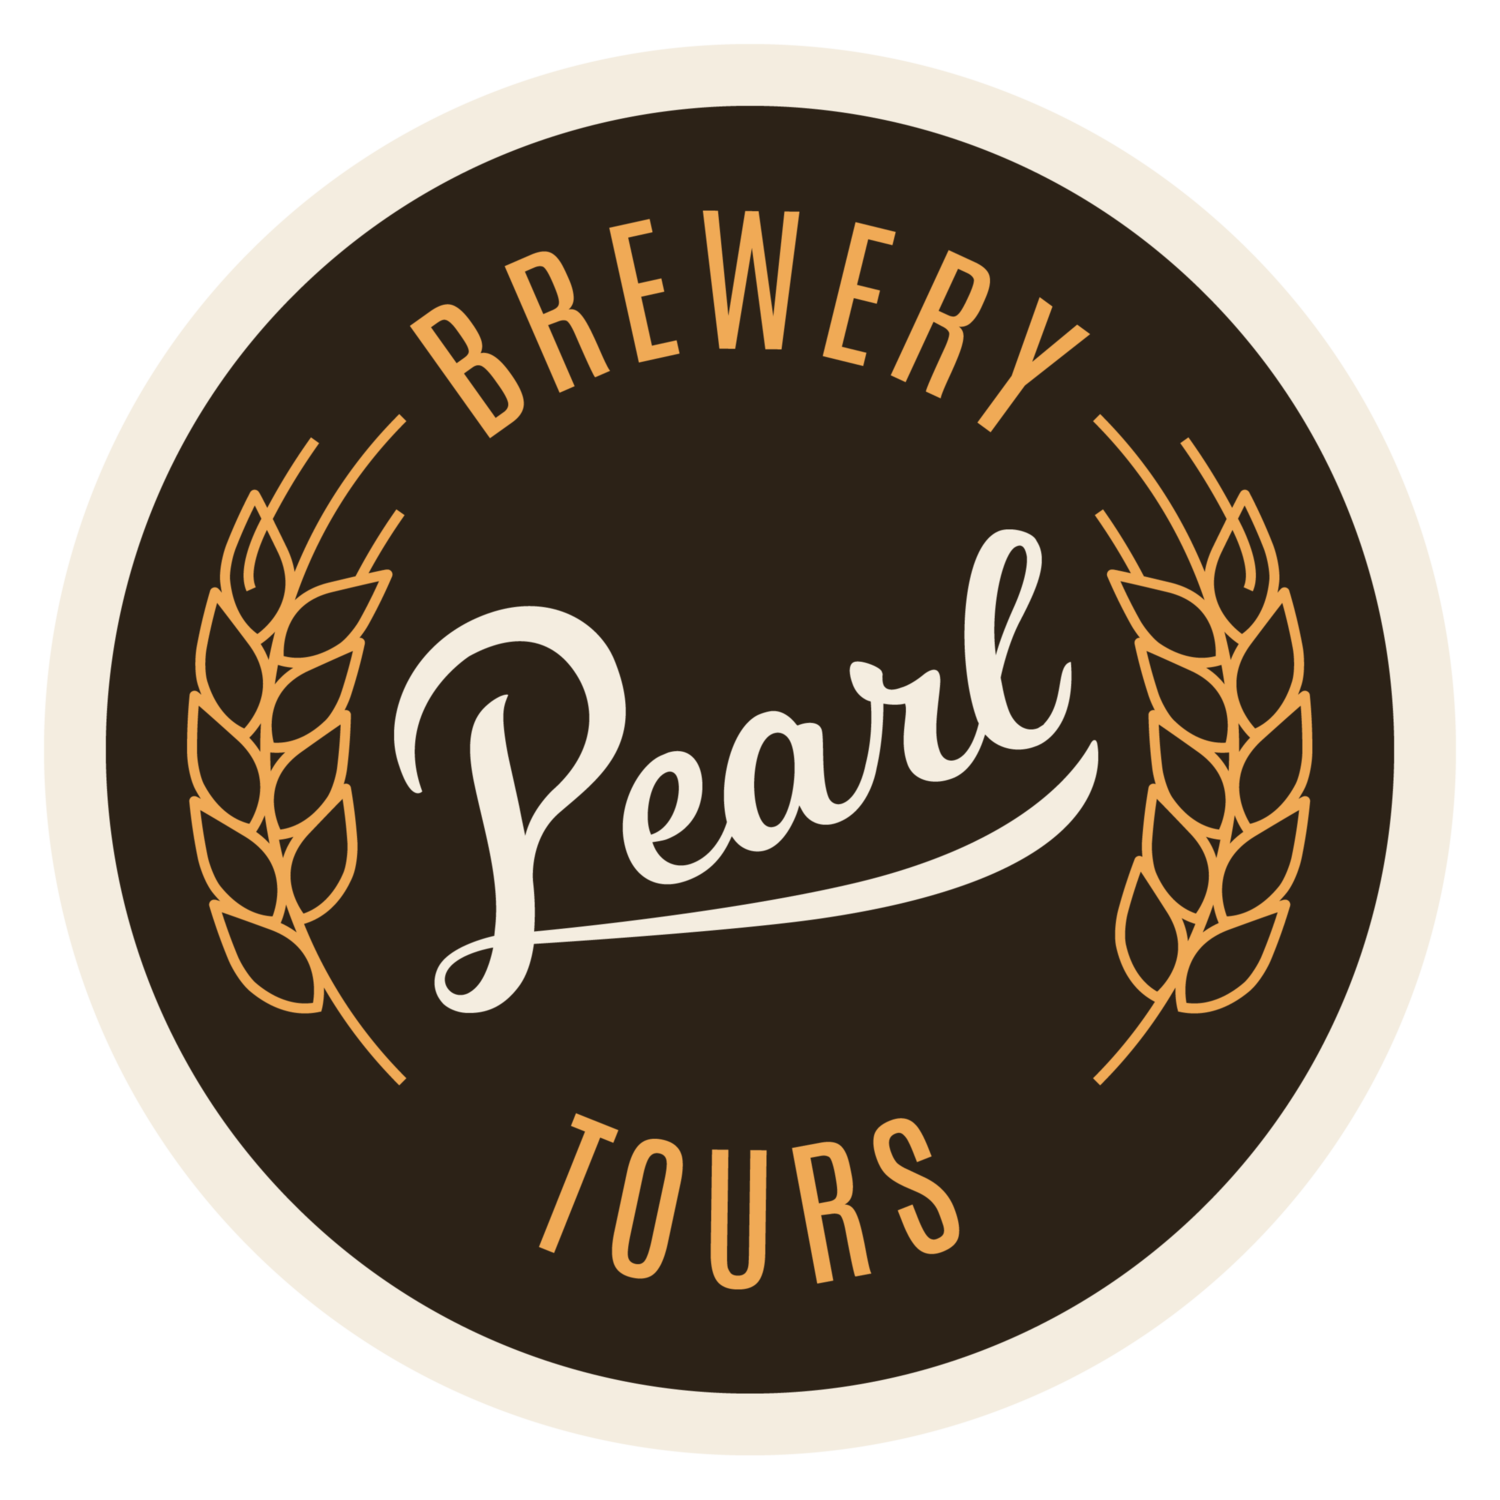 Pearl Brewery Tours